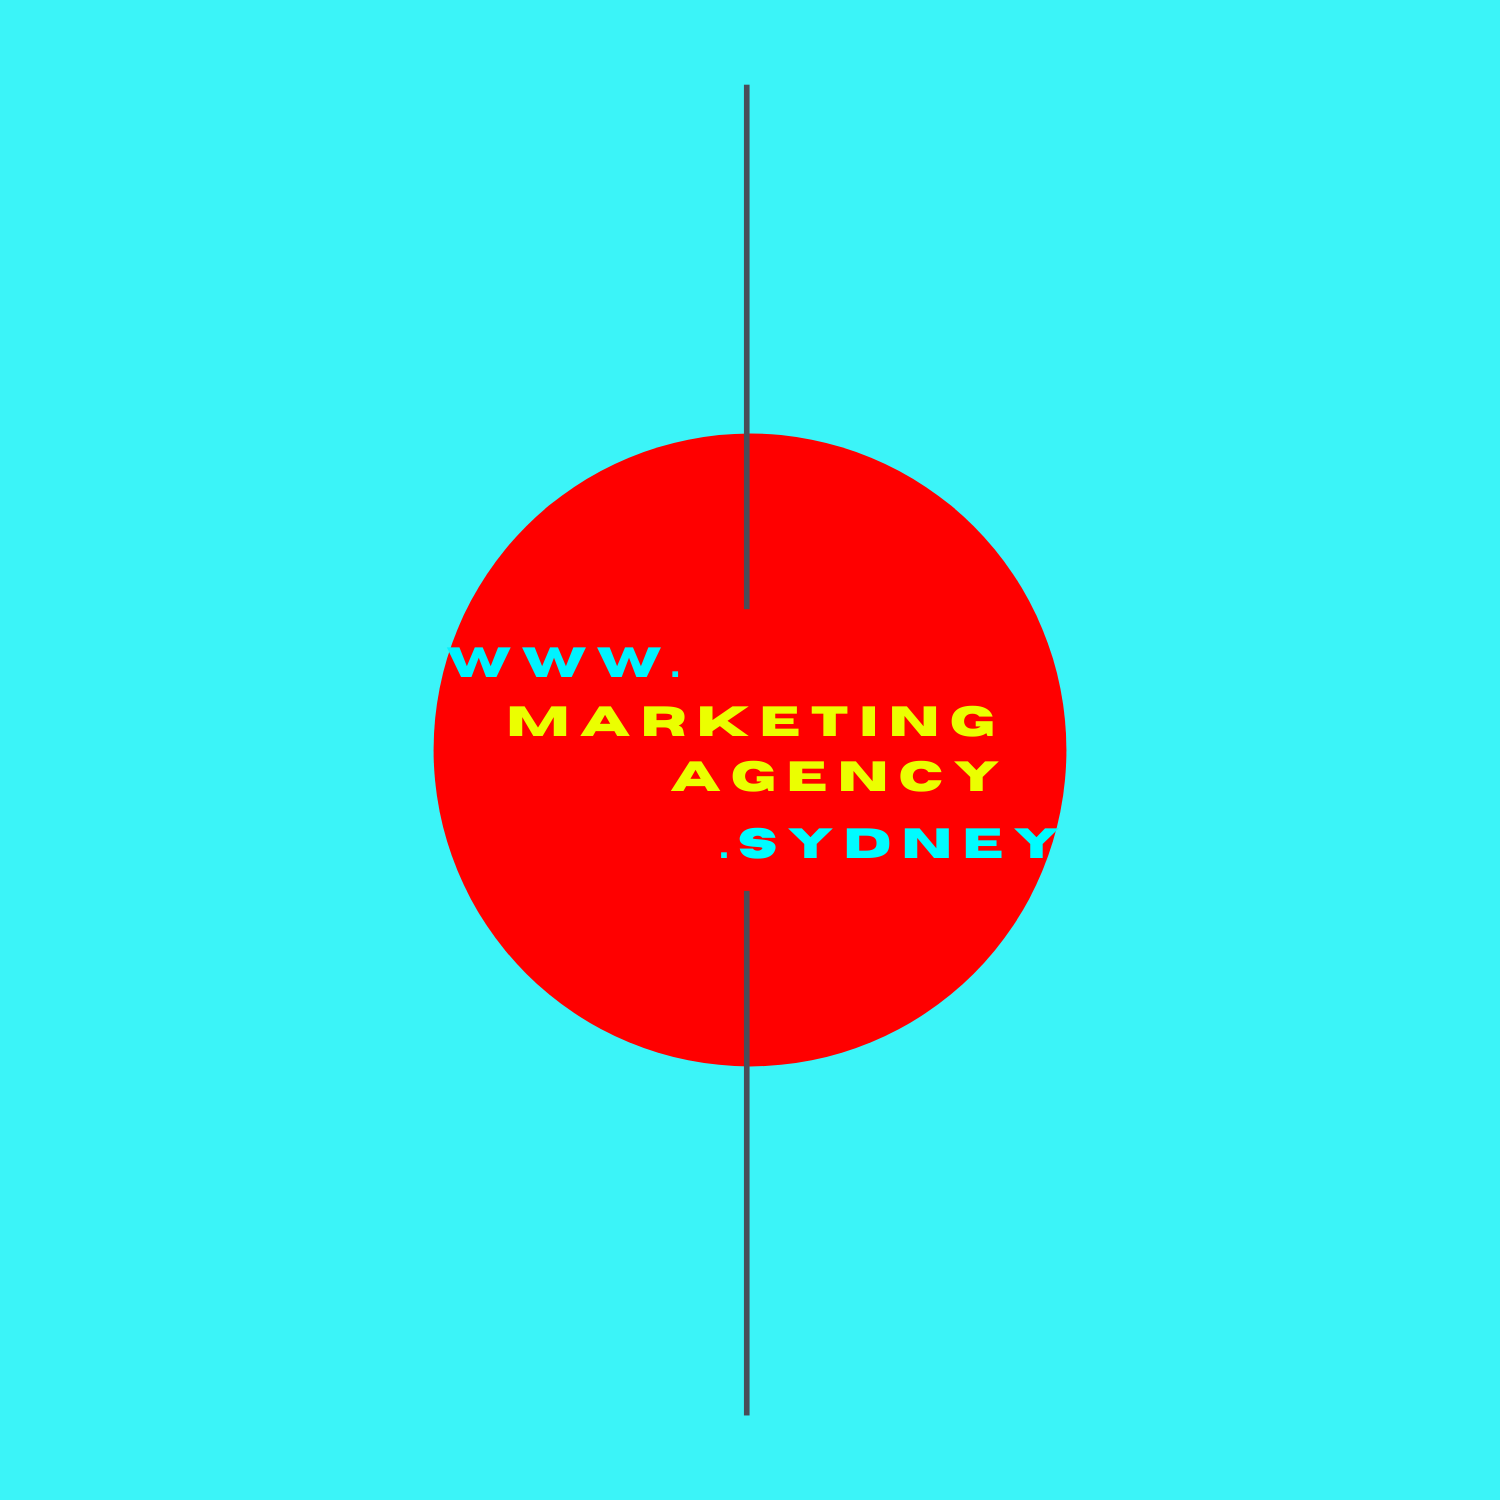 Marketing Agency Sydney